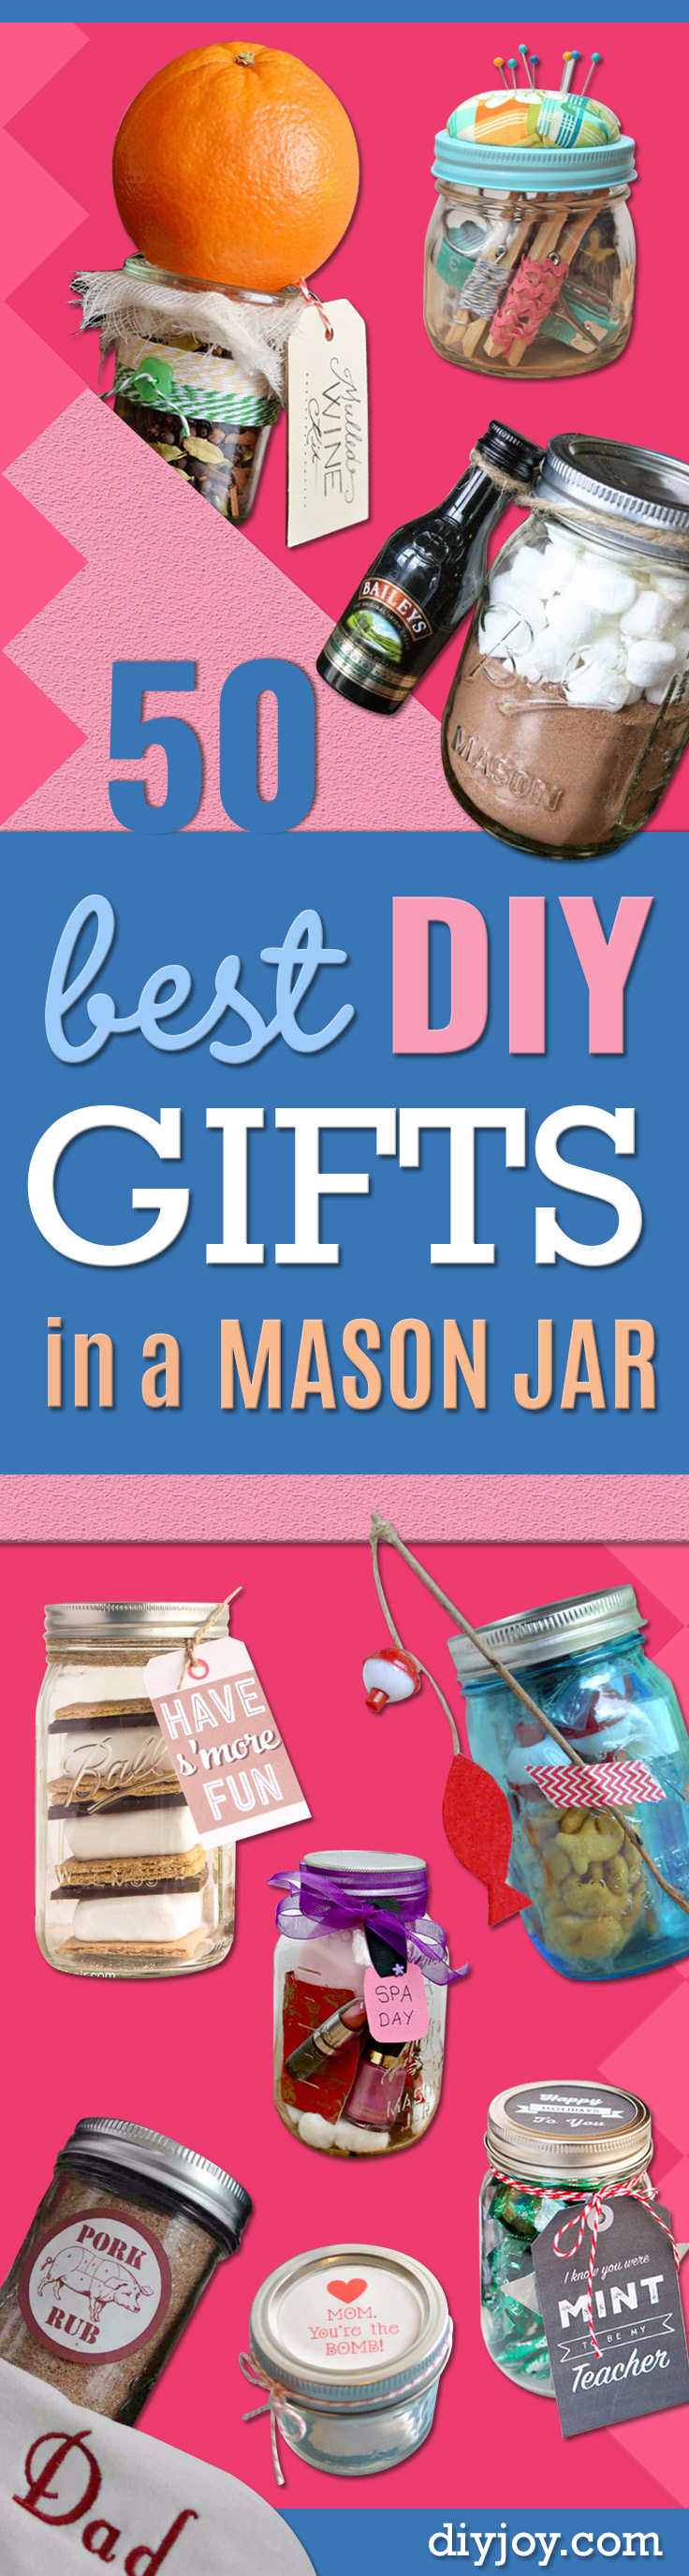 Best DIY Gifts in Mason Jars - Cute Mason Jar Crafts and Recipe Ideas that Make Great DIY Christmas Presents for Friends and Family - Gifts for Her, Him, Mom and Dad - Gifts in A Jar That Are Easy, Quick and Cheap http://diyjoy.com/best-diy-mason-jar-gifts